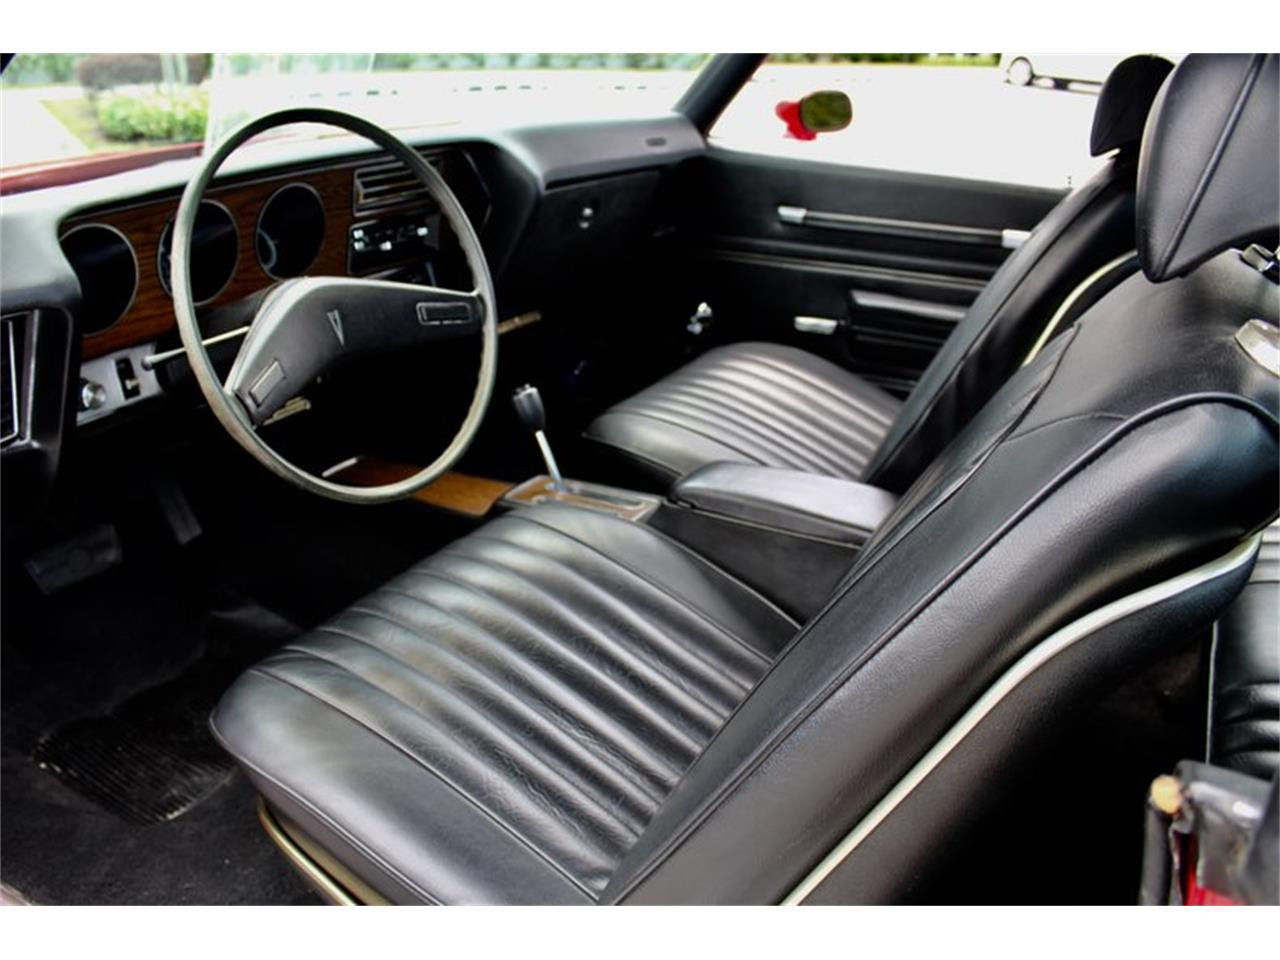 Large Picture of 1972 Pontiac LeMans located in Sarasota Florida Offered by Classic Cars of Sarasota - PUAK